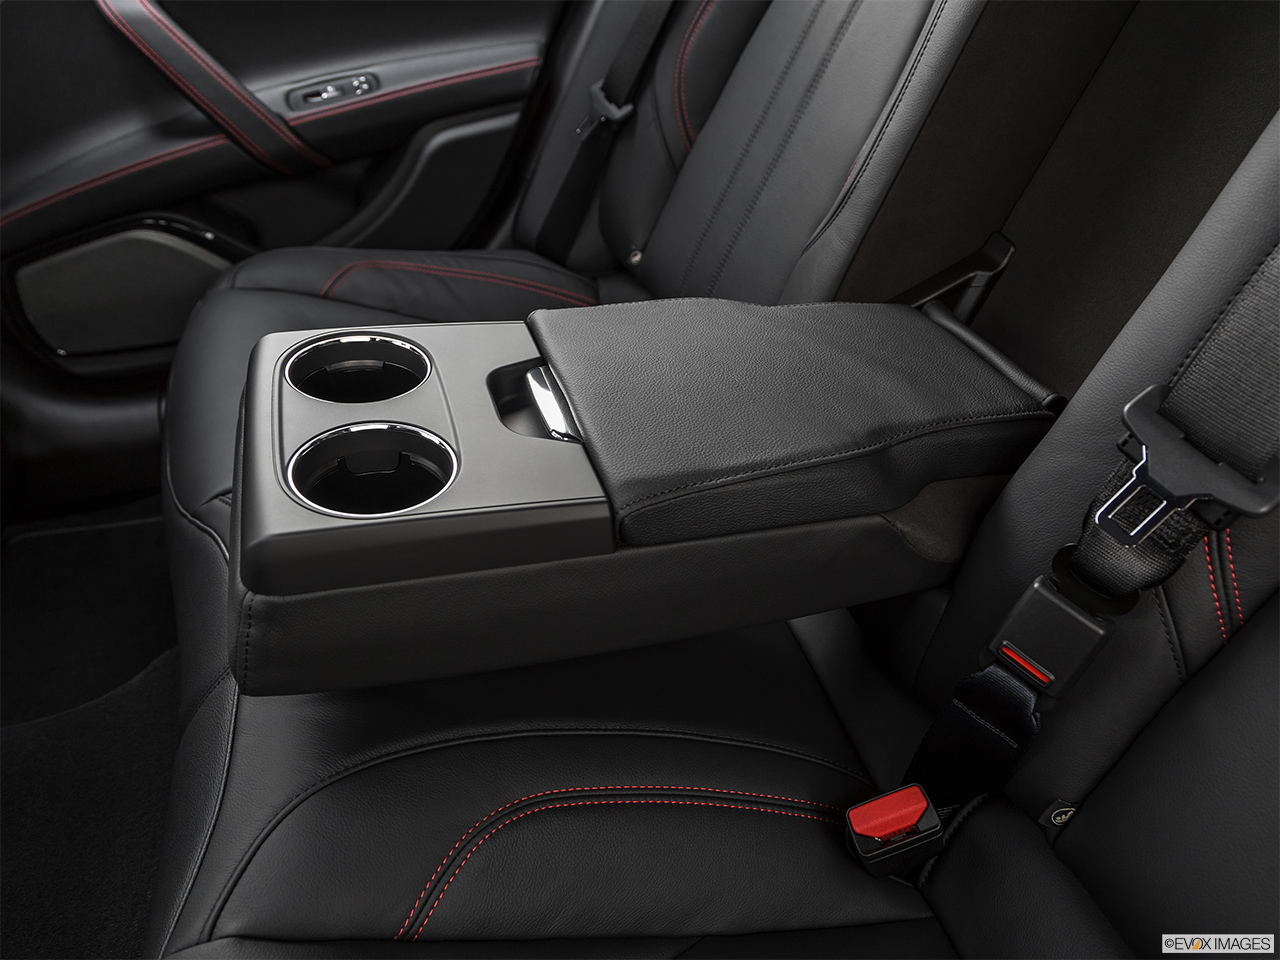 2020 Maserati Ghibli S Gransport Rear center console with closed lid from driver's side looking down.